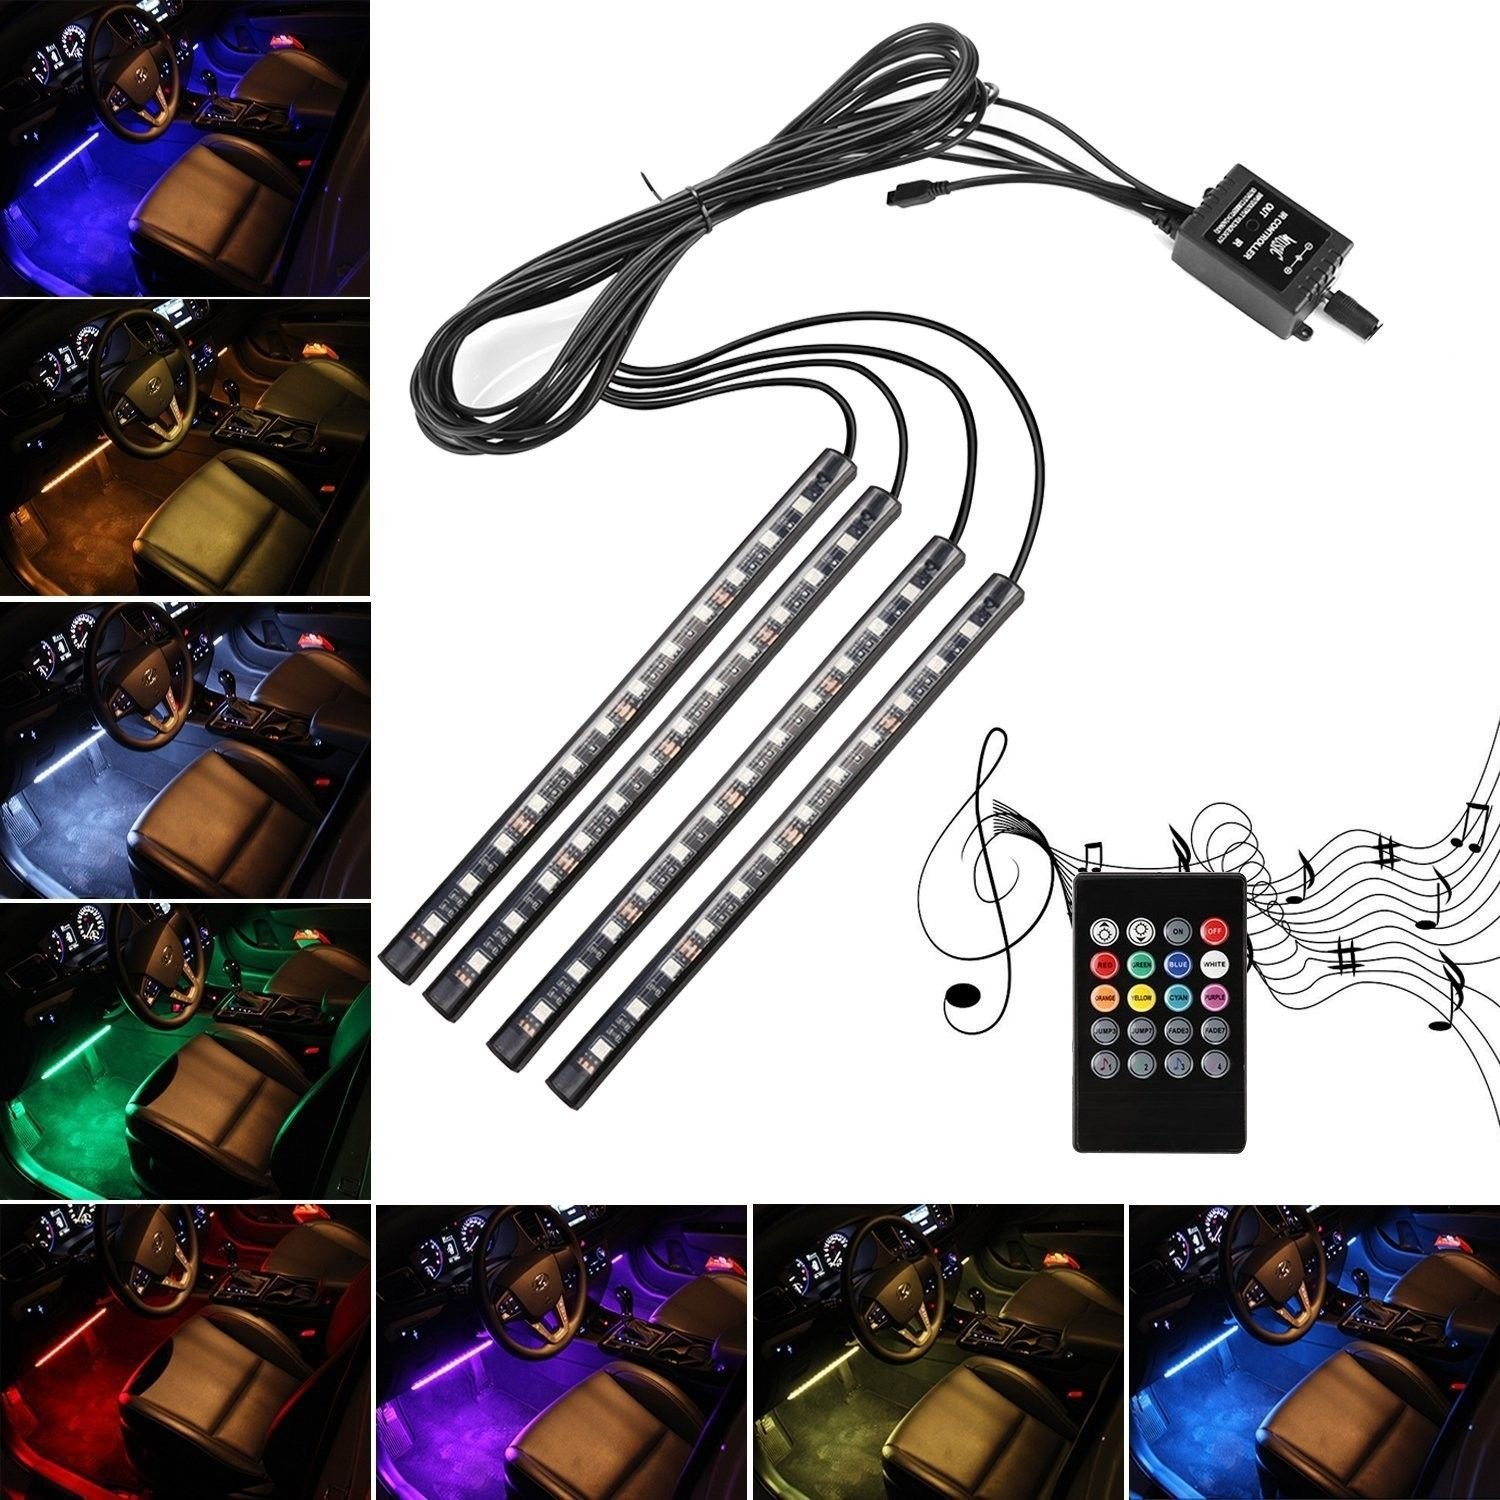 Car LED Strip Lights,4pcs 48 LED Multicolor Music Interior Strip Lights Under Dash Lighting Waterproof Kit With Sound Active Function And Wireless Remote Control,Car Charger Included,DC 12V by Creatrek (Image #1)